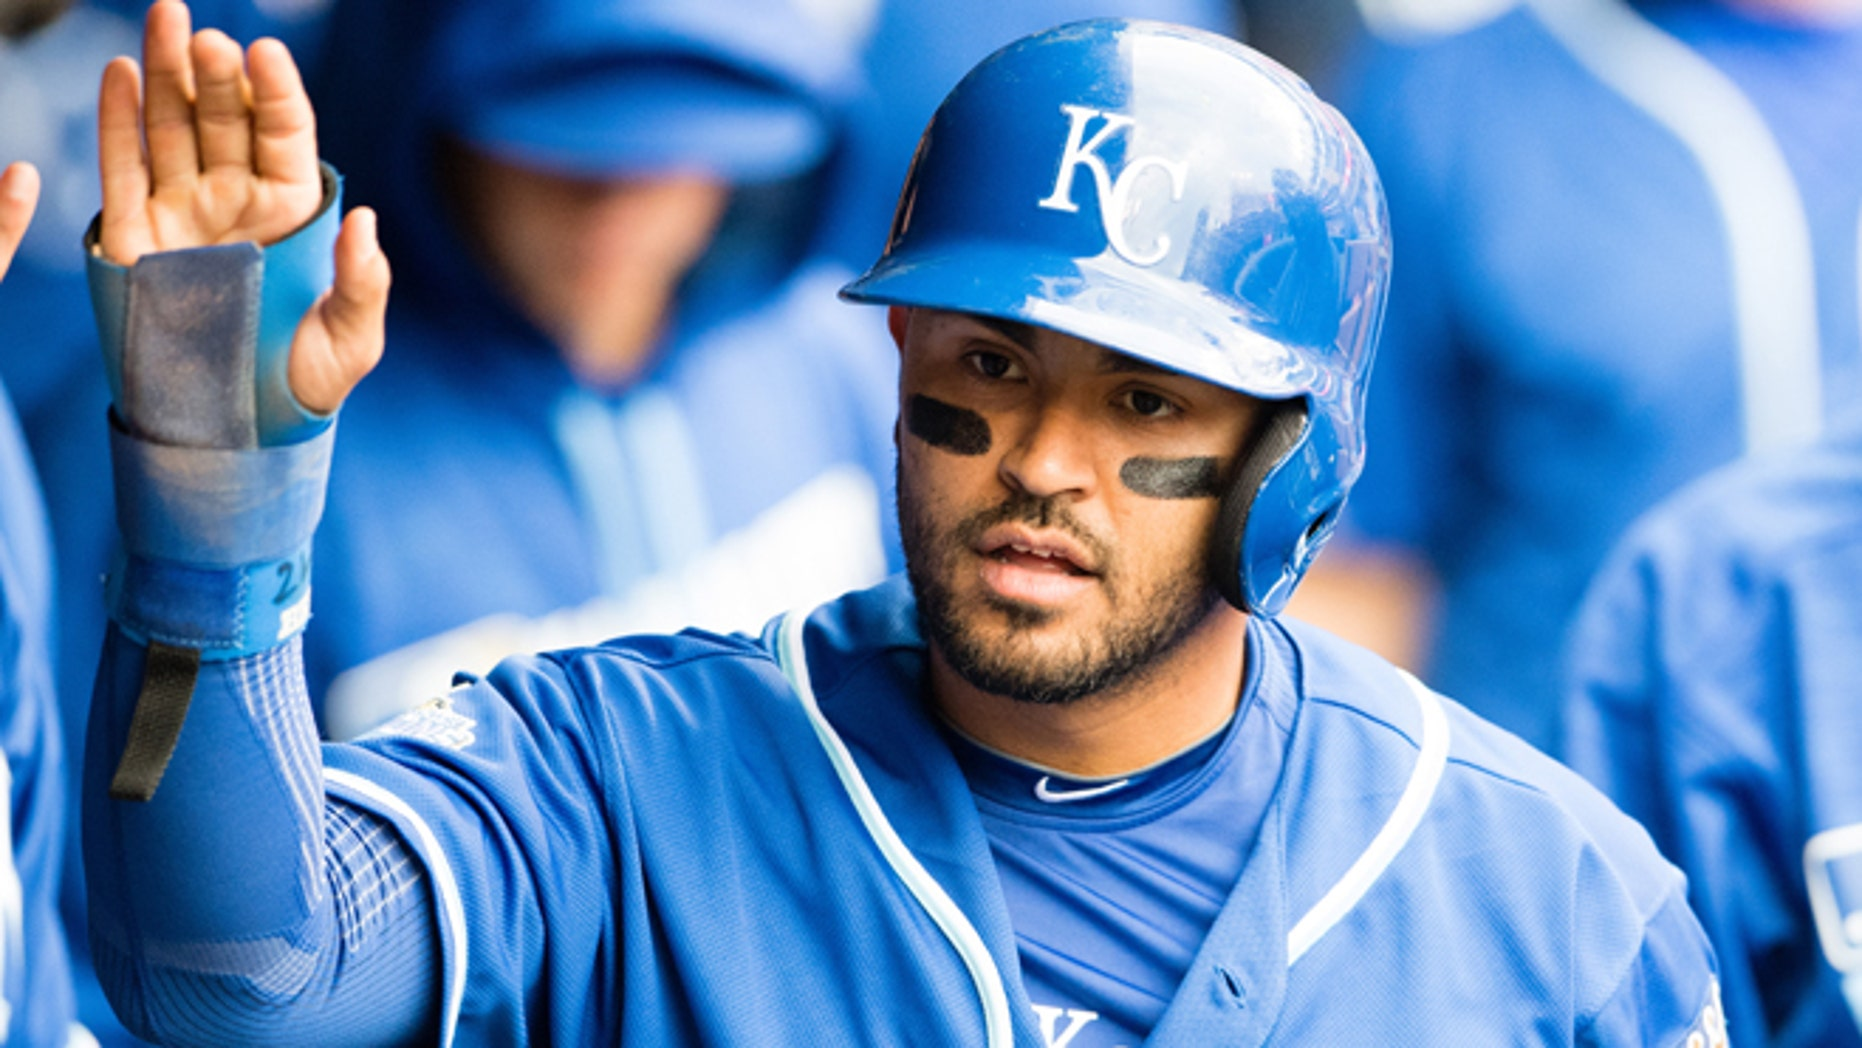 CLEVELAND, OH -  MAY 7: Christian Colon #24 of the Kansas City Royals celebrates after scoring during the fifth inning against the Cleveland Indians at Progressive Field on May 7, 2016 in Cleveland, Ohio. (Photo by Jason Miller/Getty Images)